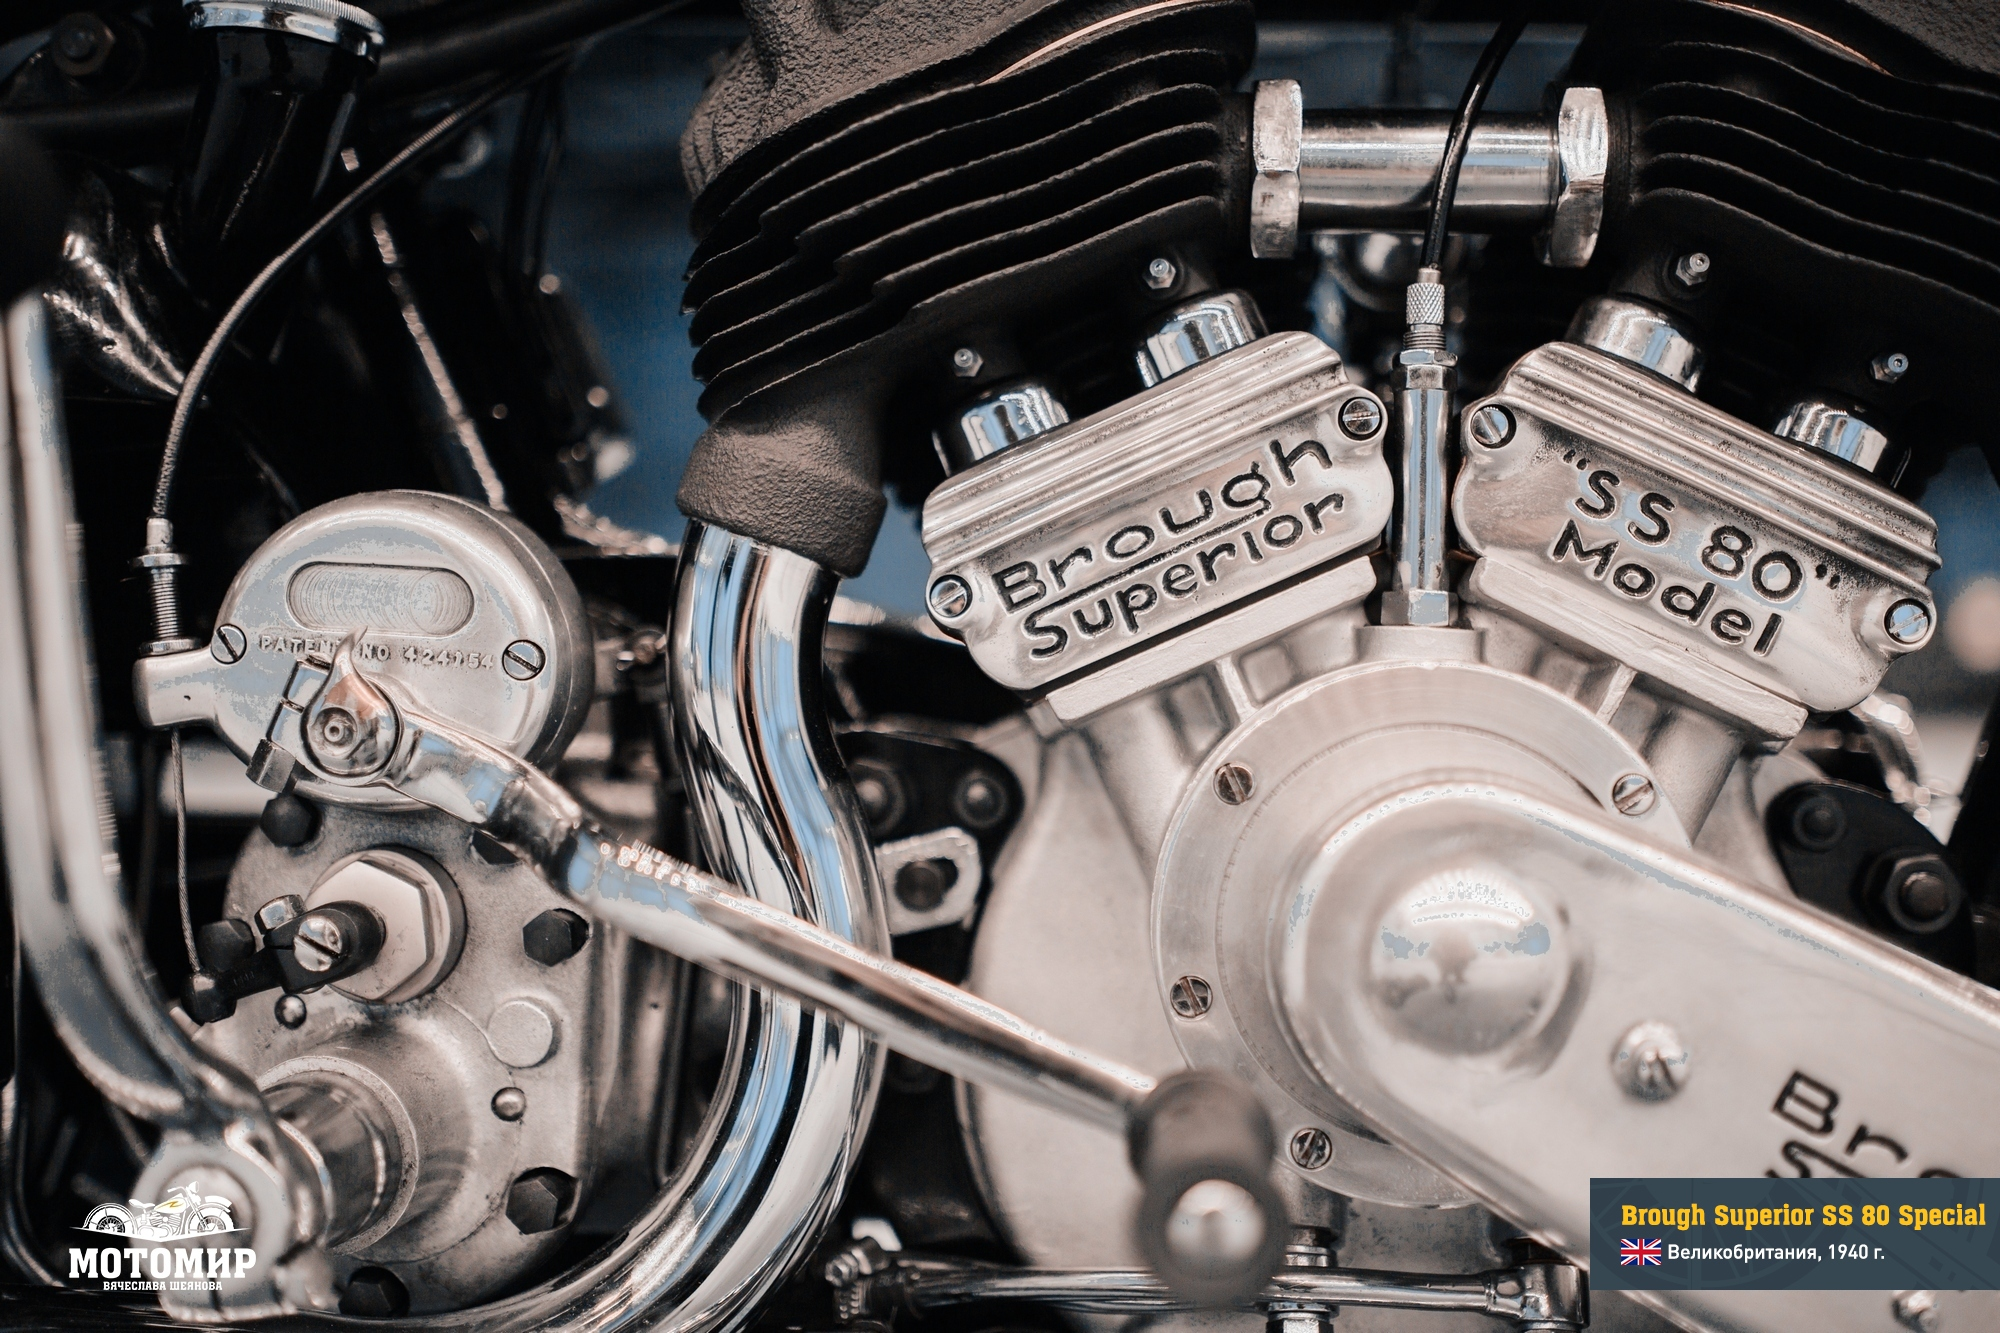 brough-superior-ss-80-201502-web-28